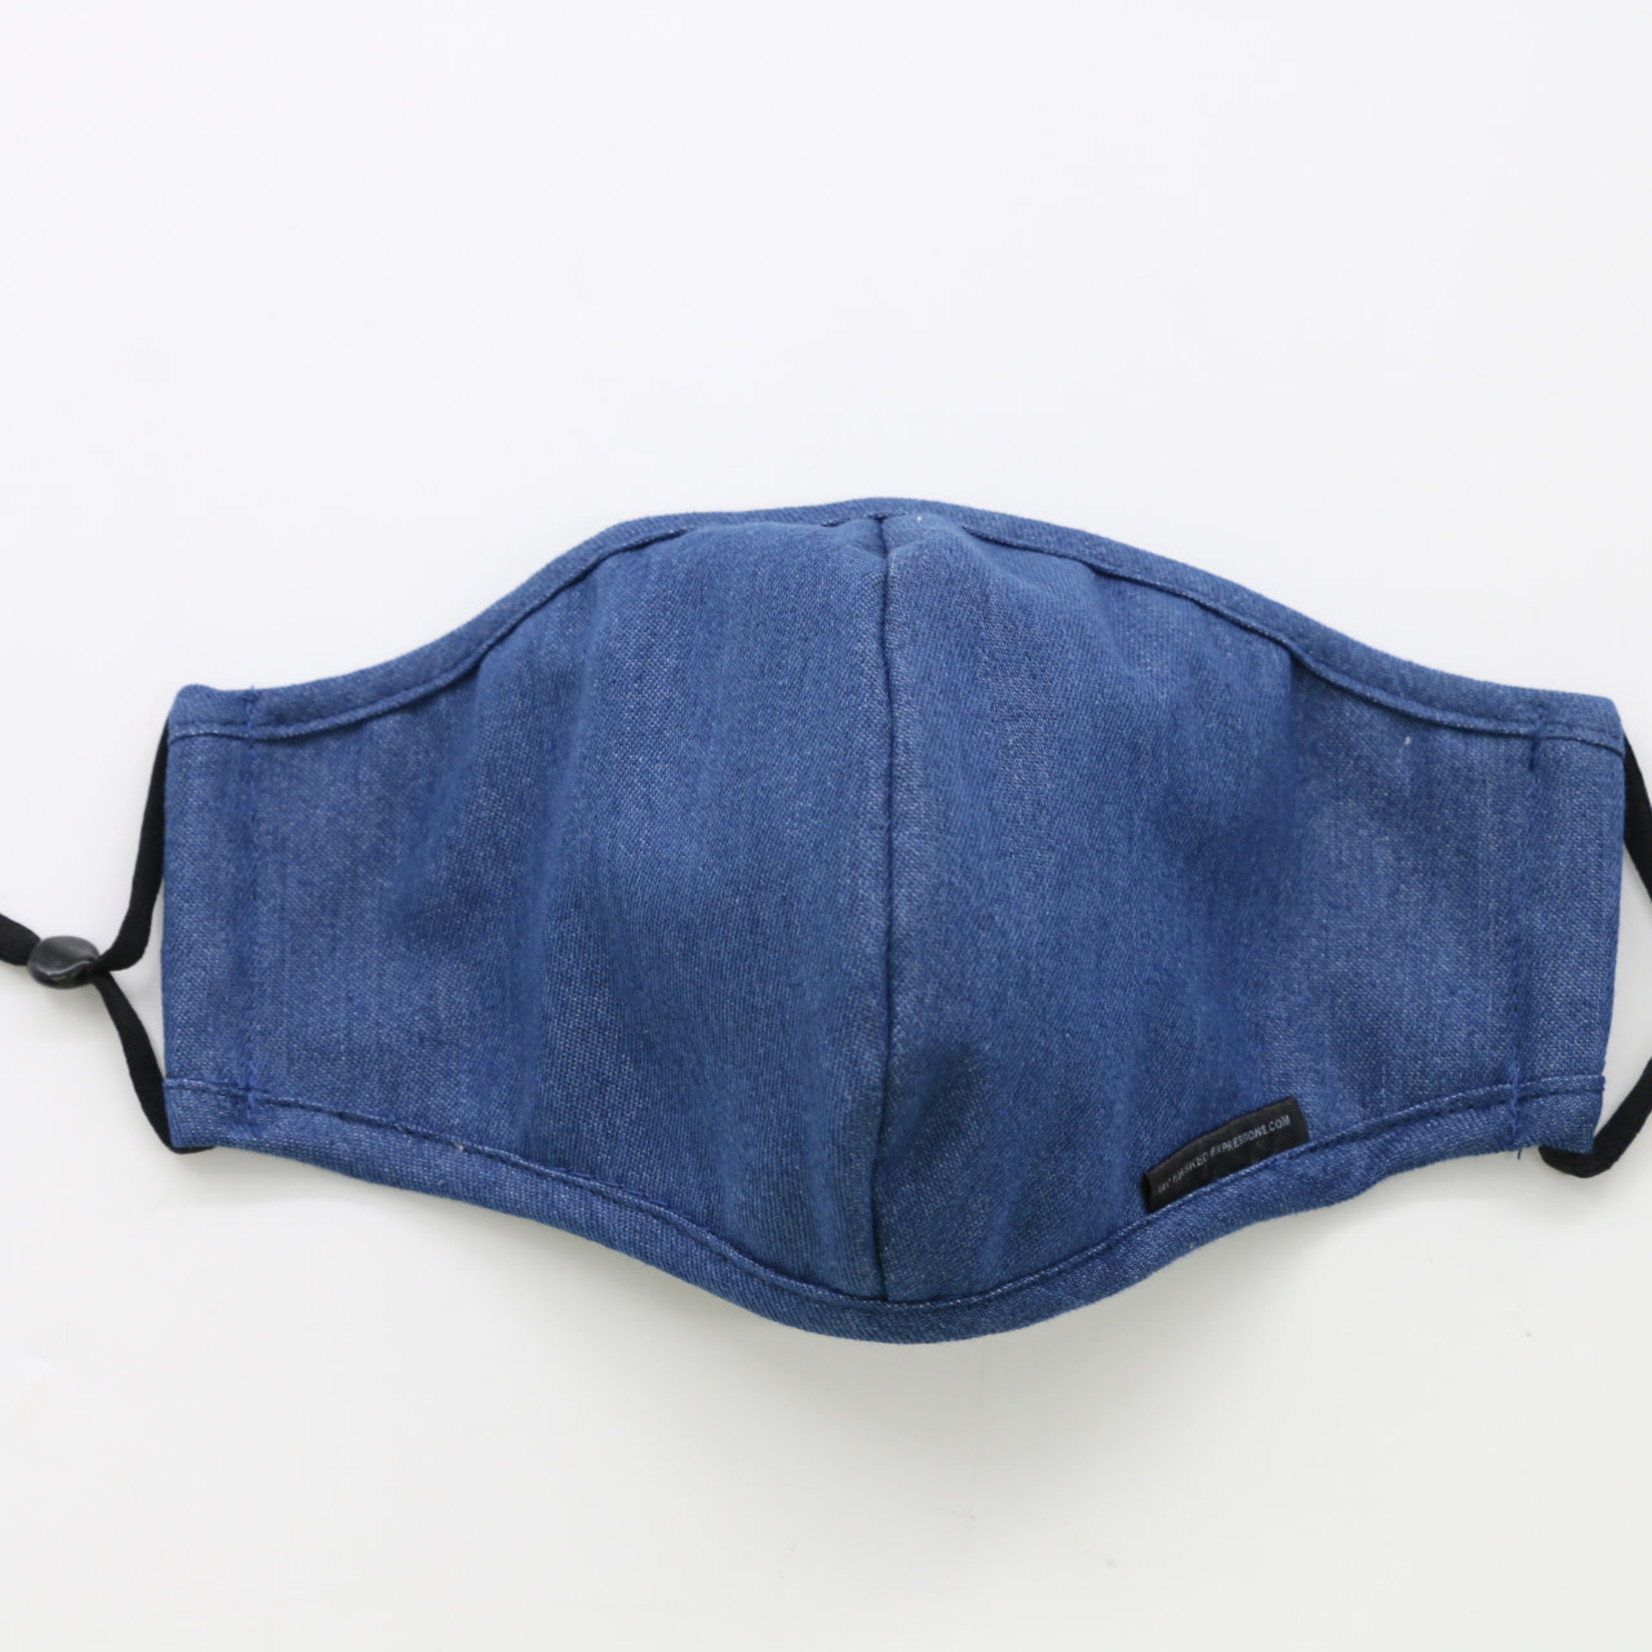 My Masked Expressions Adult Size Mask, Classic Blue Denim